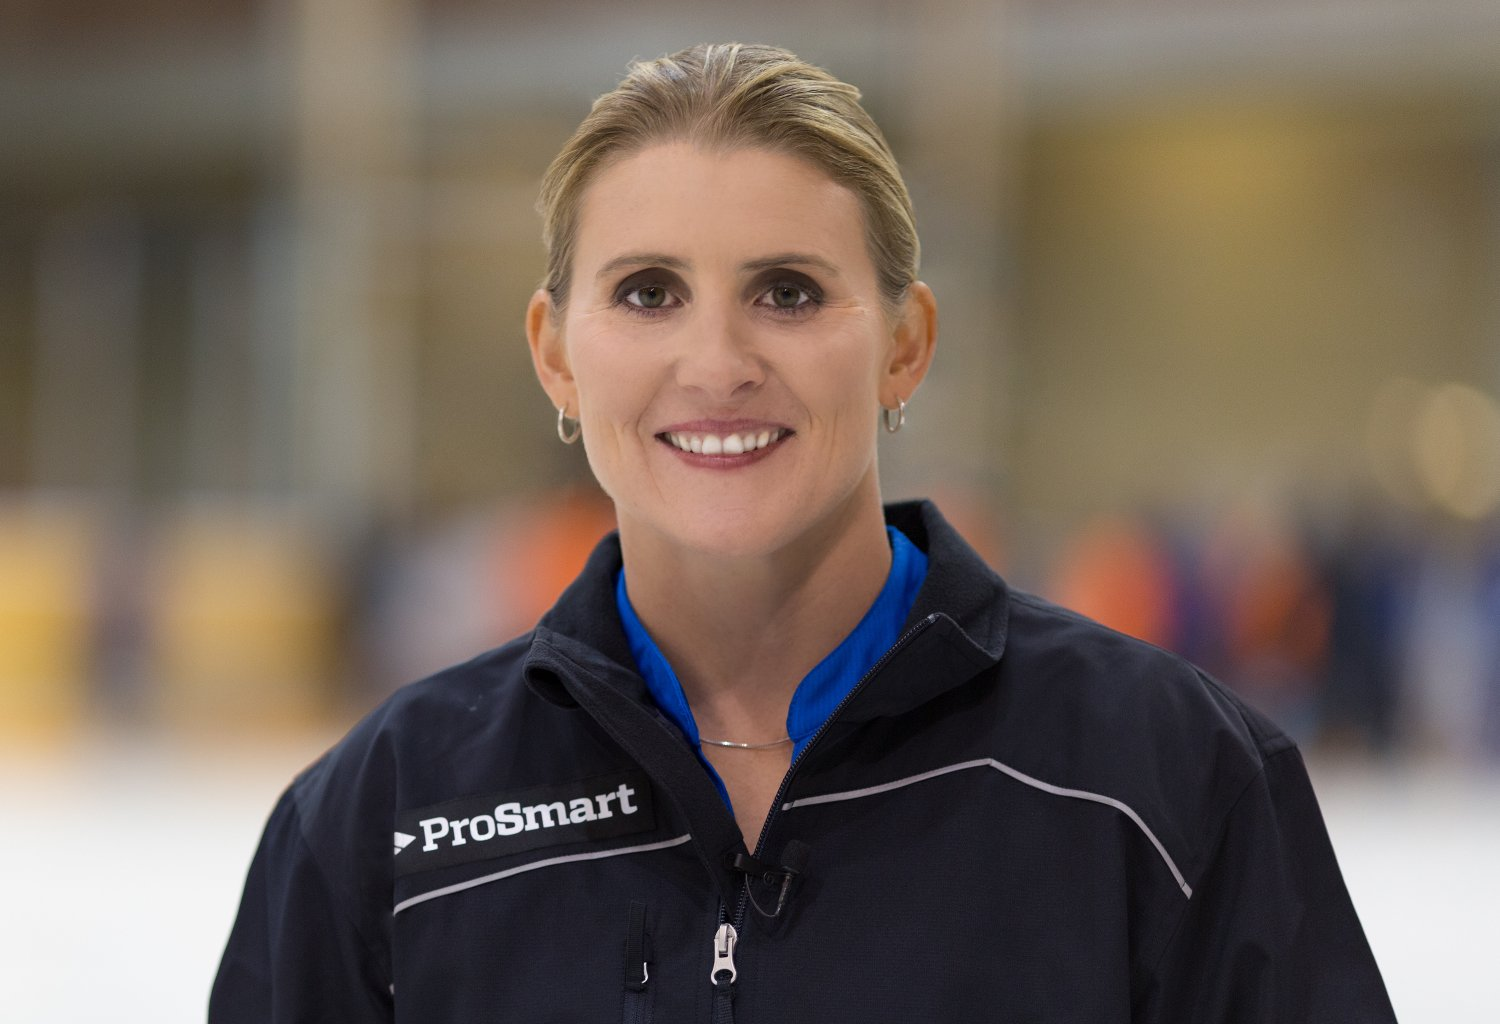 Hayley Wickenheiser - 4-time Olympic Hockey Gold Medalist'I'm excited that all players and coaches will have access to such great learning and development resources year after year through Sportgo!'